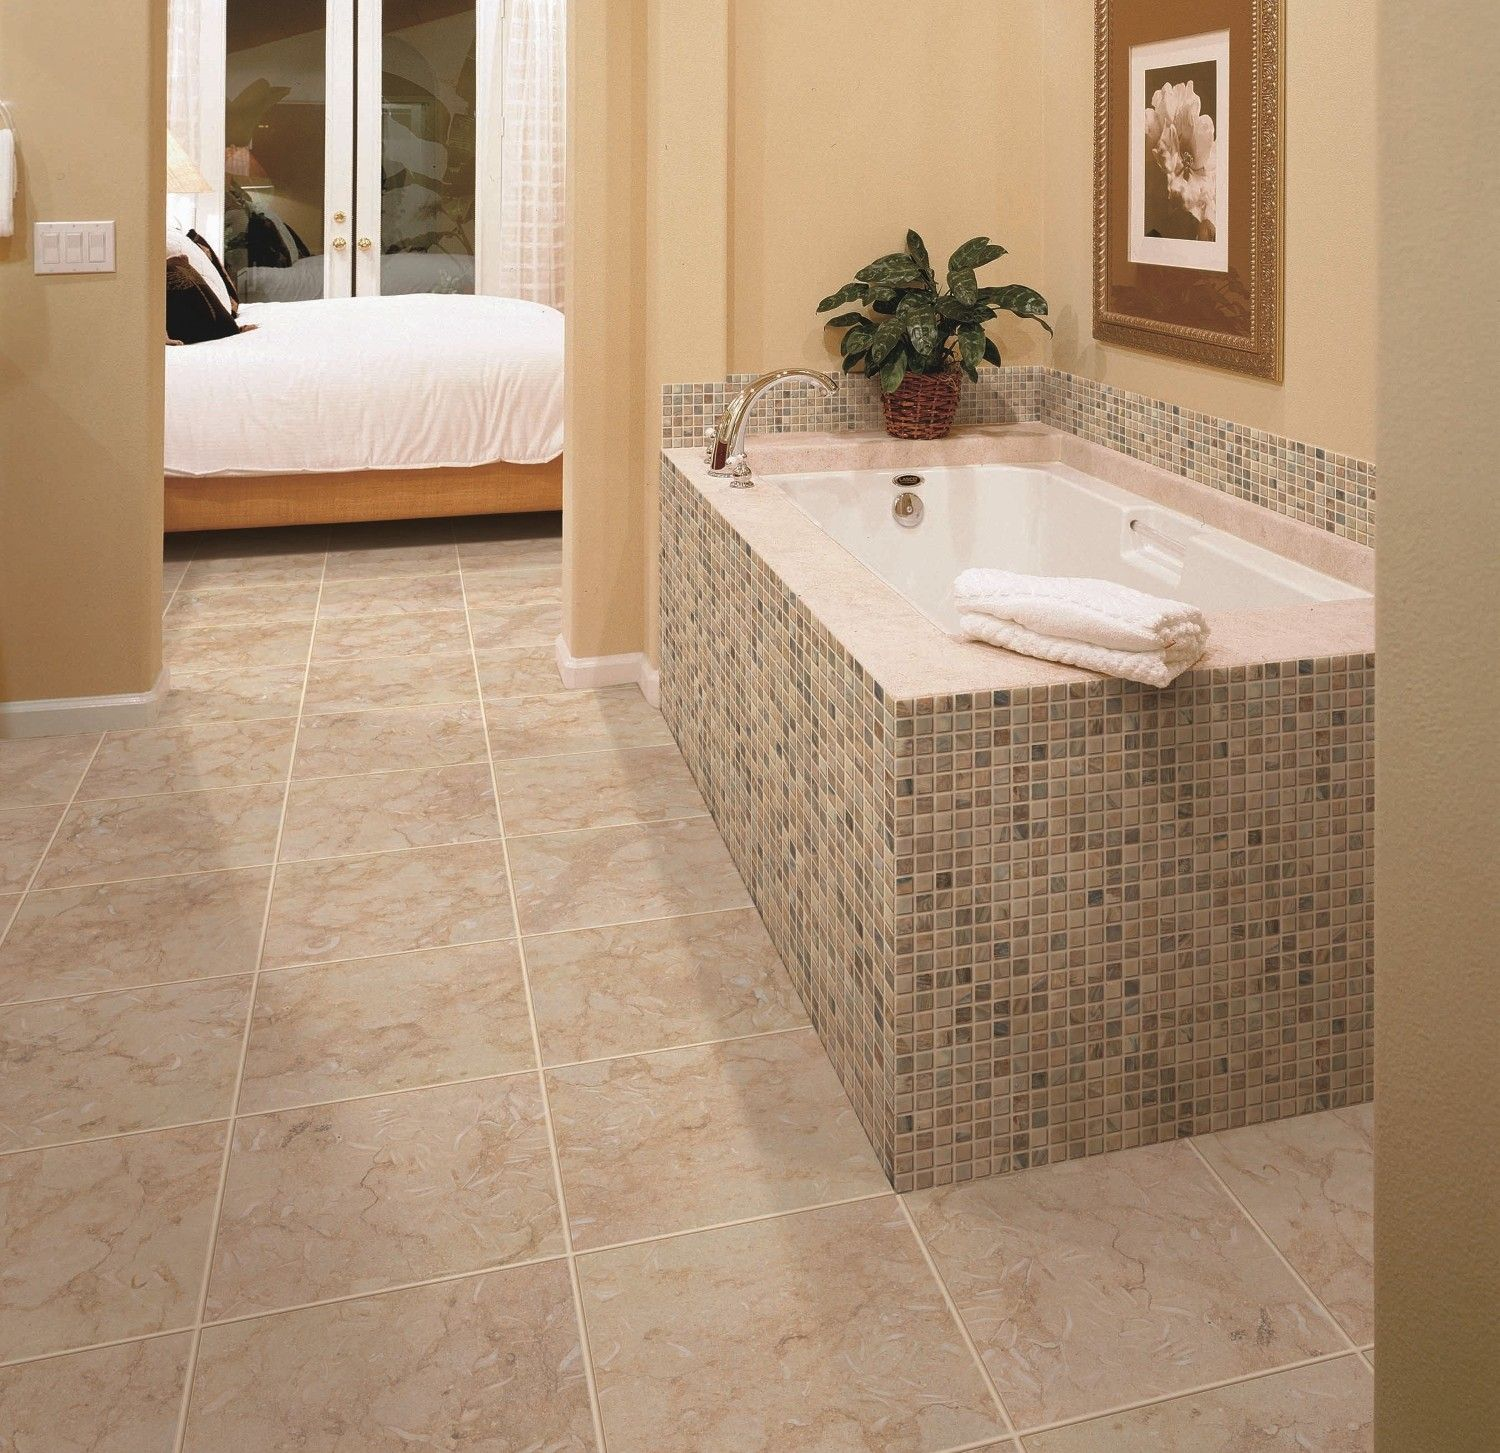 Sea Stone Sand Floor interceramic tile matched with cream wall plus bathup for bathroom decor ideas